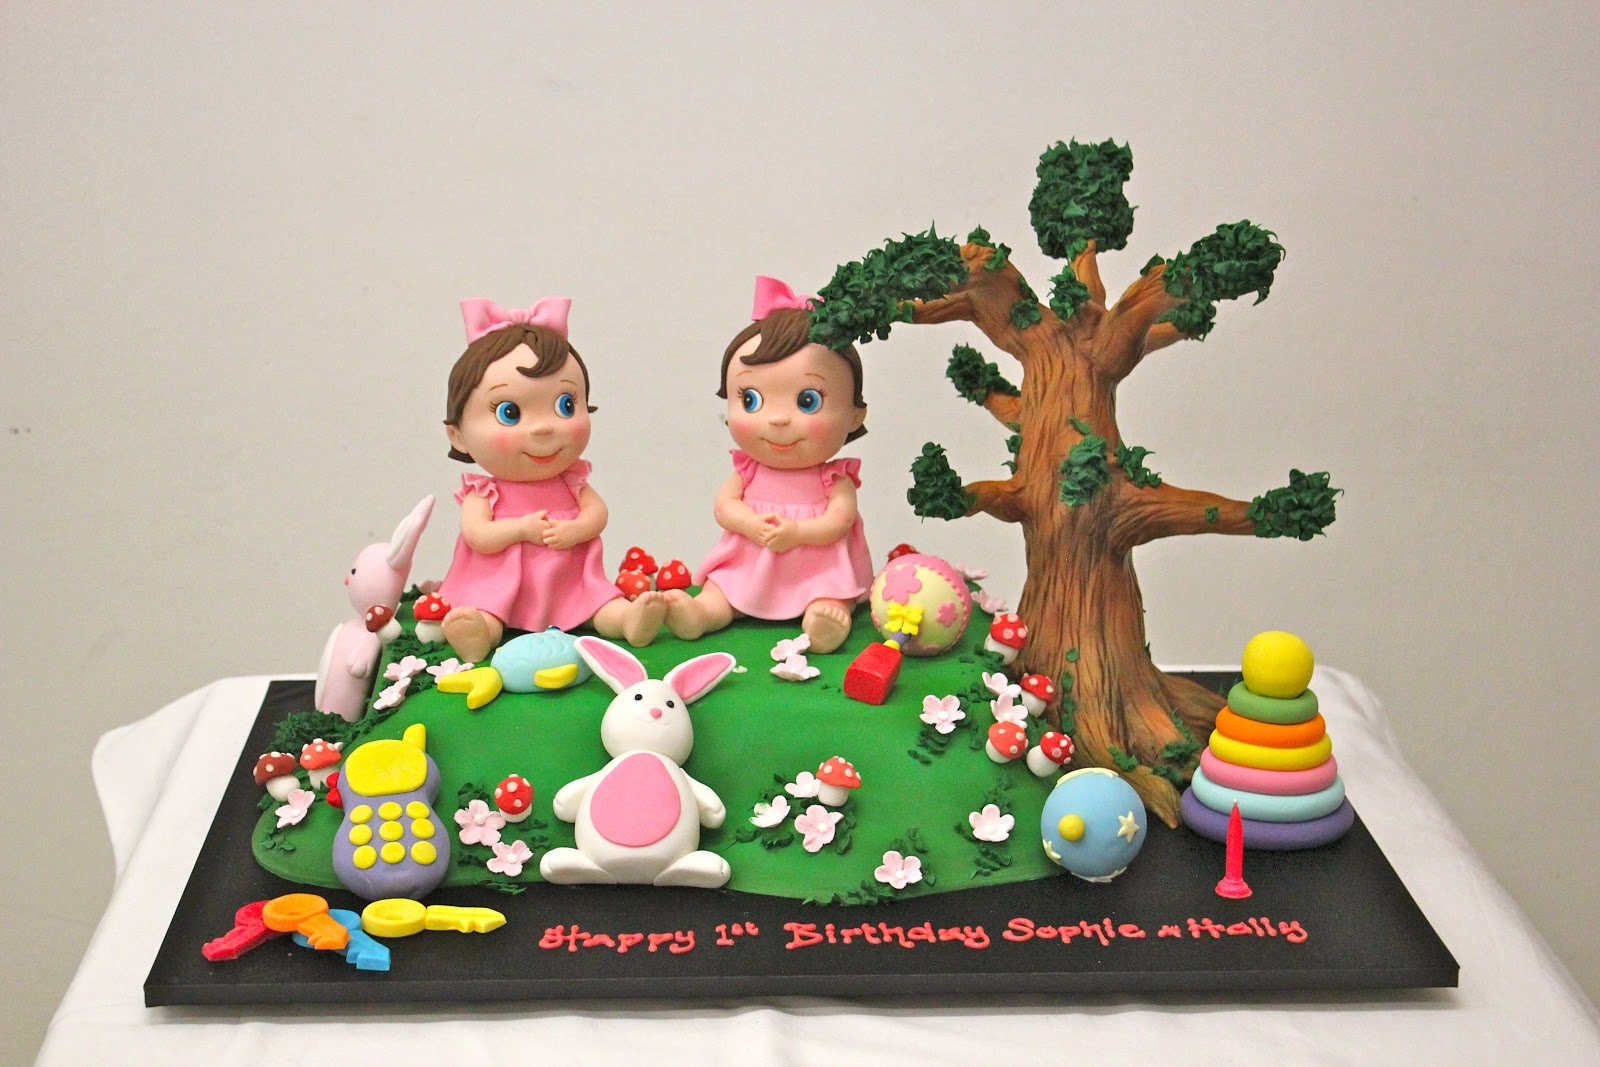 Handis Cakes Twins Picnic In The Park Birthday Cake